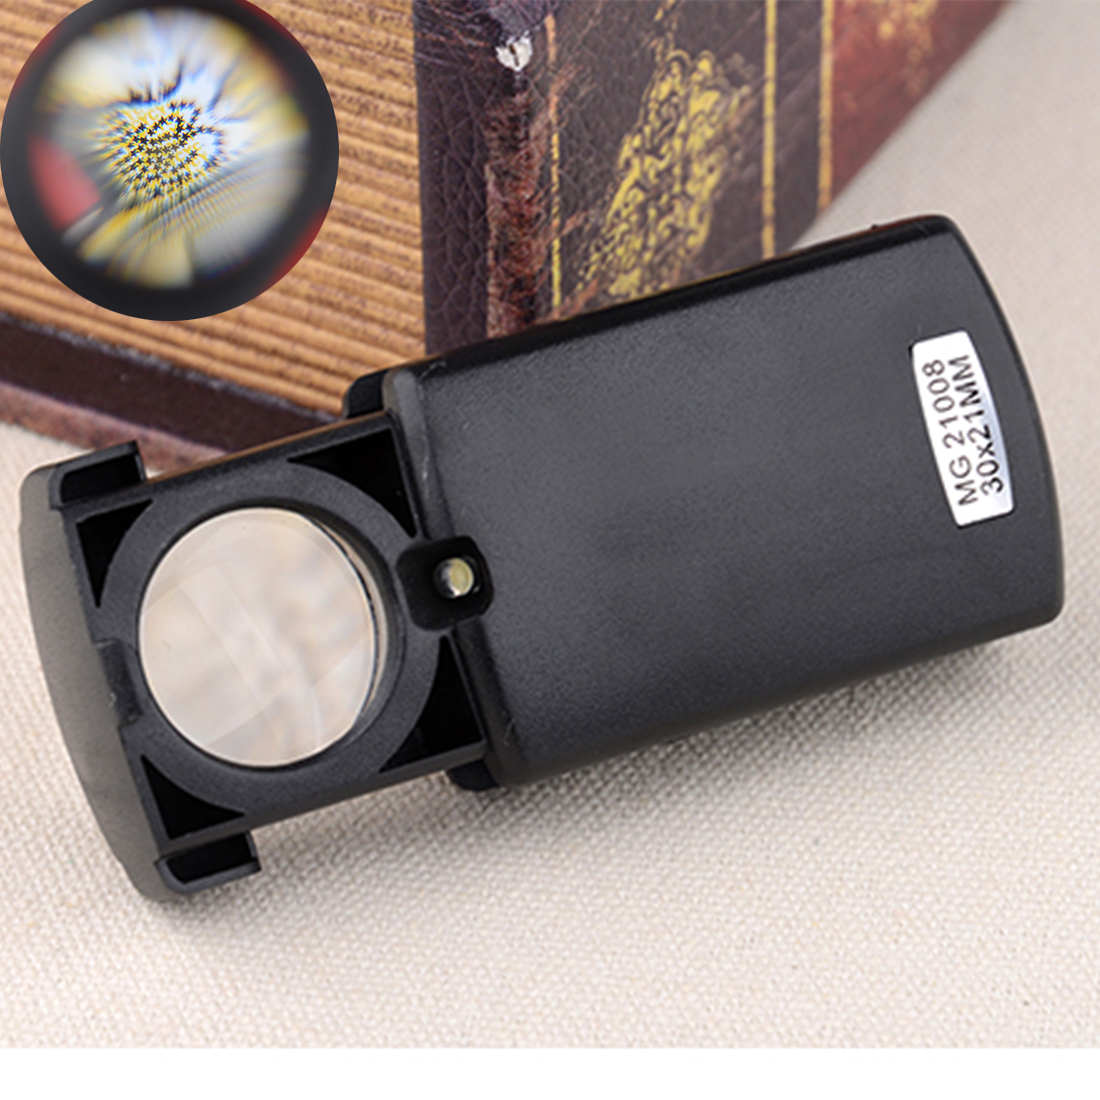 30 X 21mm Folding Eye Loupe Magnifier Glass Lens Loupe With LED Light For Jewelry Watch Repair Tools Portable